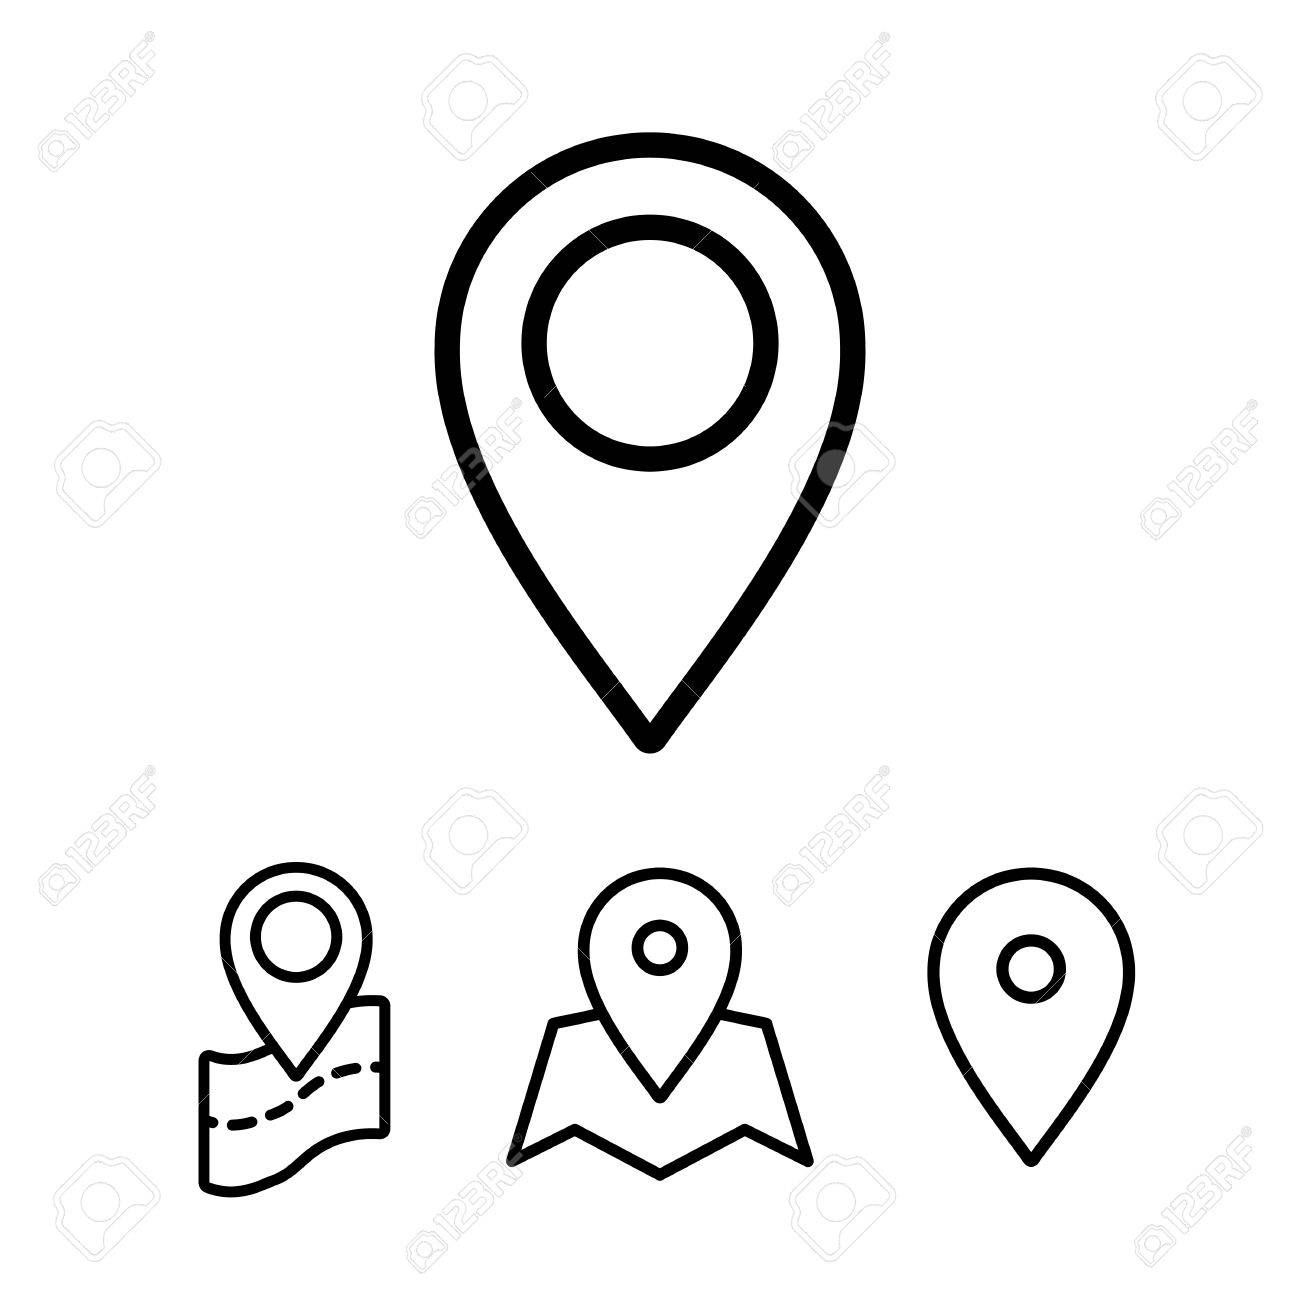 Thin Line Google Map Search Pin Point Location Icon On White Royalty Free Cliparts Vectors And Stock Illustration Image 69541928